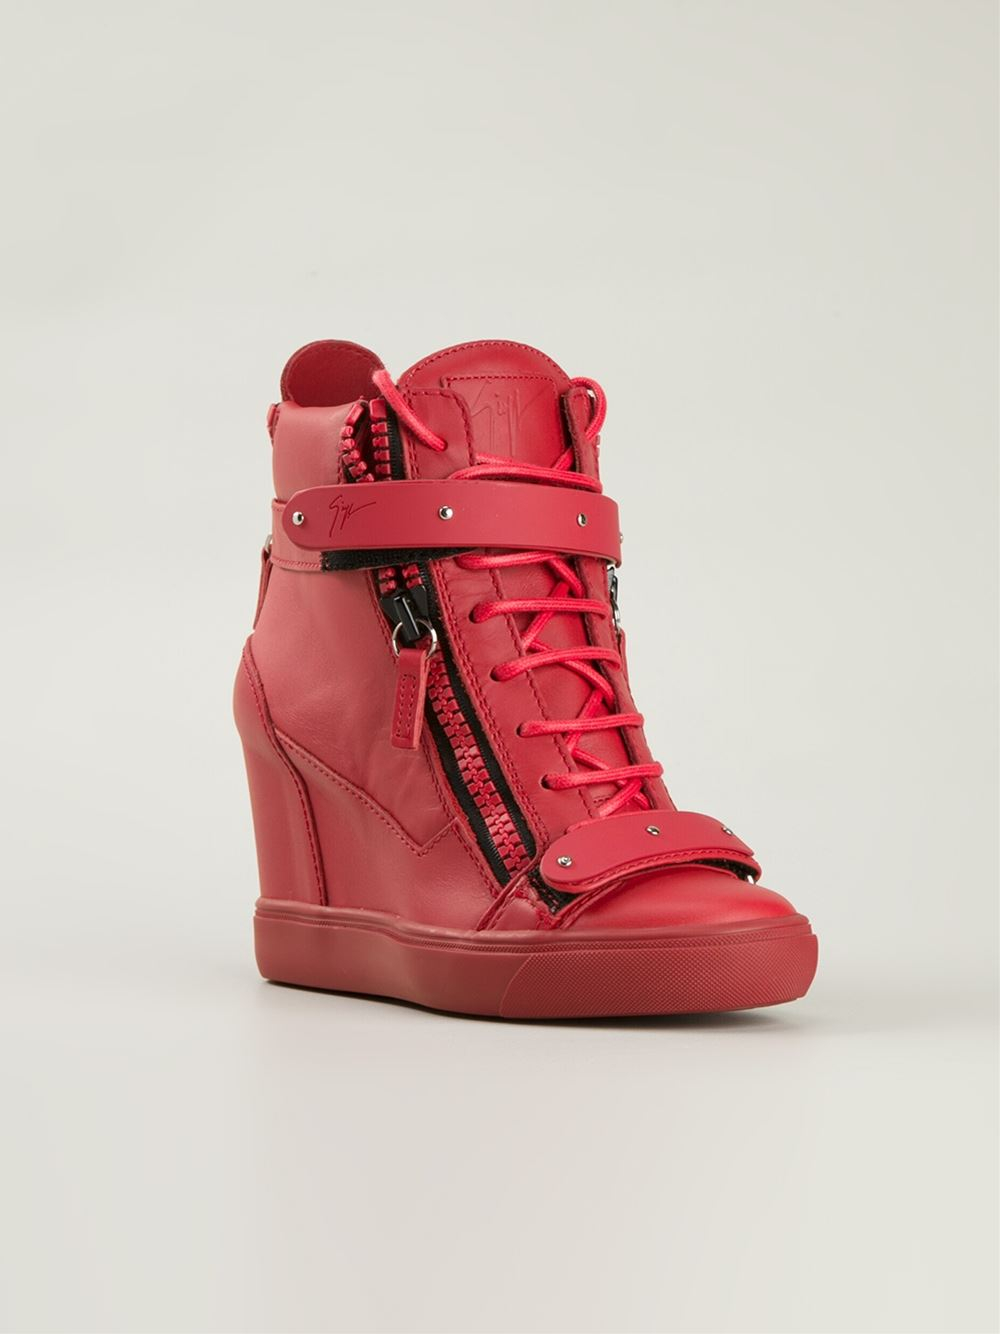 high wedge shoes red - photo #12